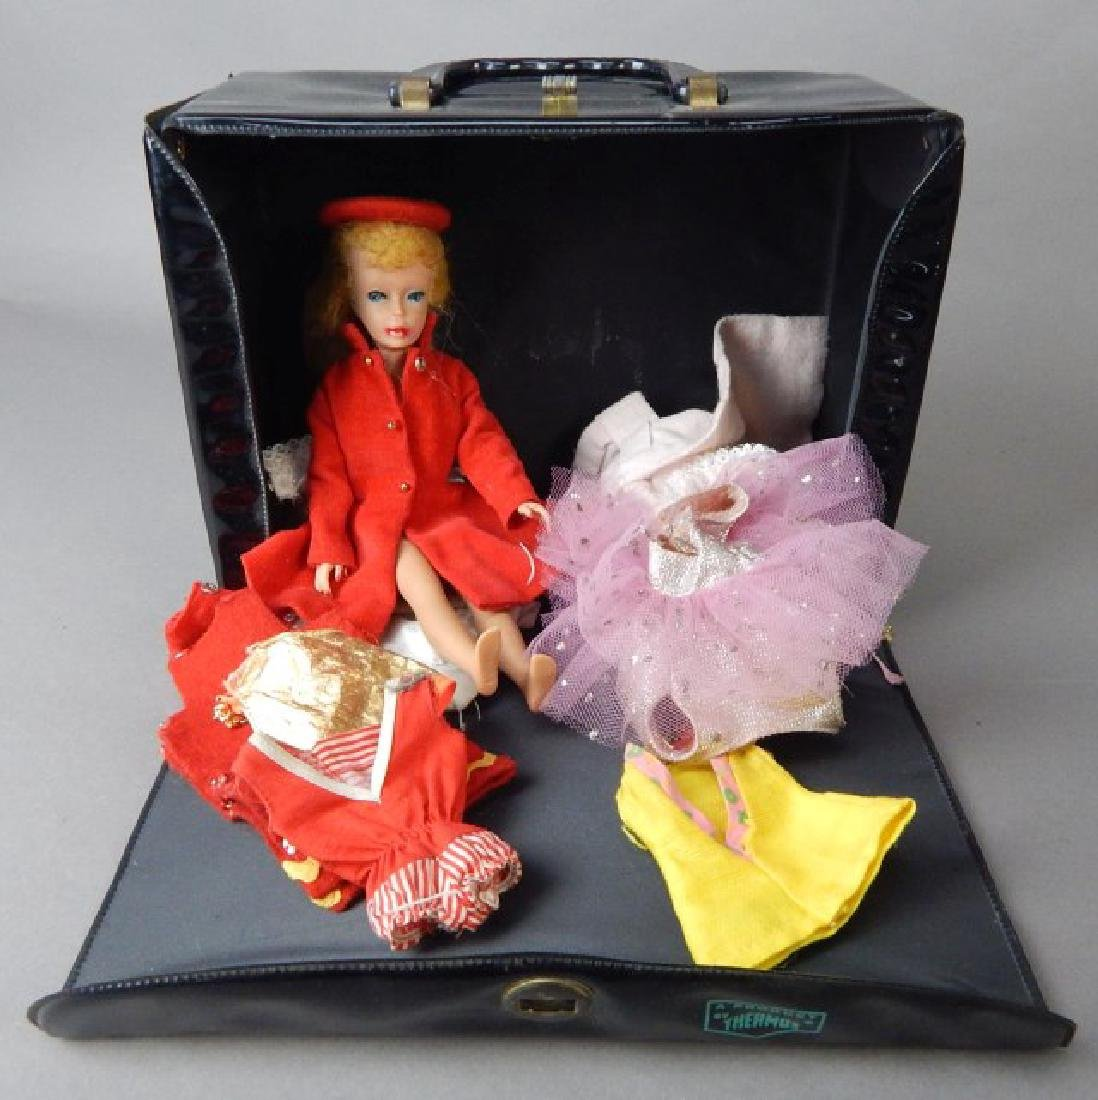 Barbie Dolls and Cases - 2